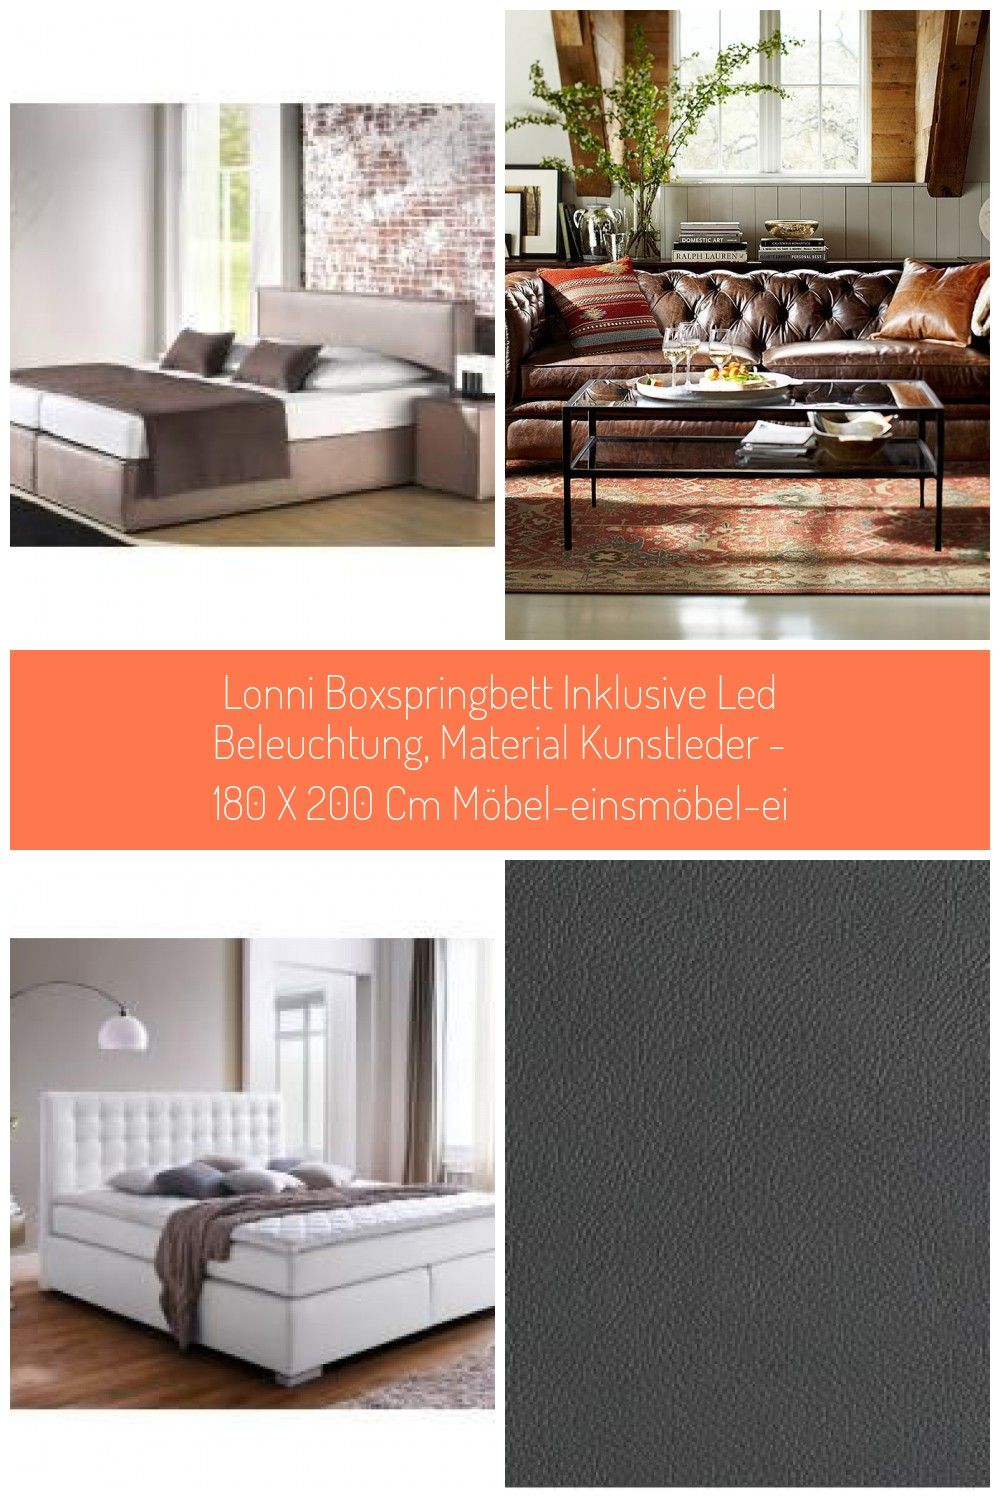 Places Of Style Boxspring Bett Carva 160x200 Cm Grau Places Of Styleplaces Of Style Leather Furniture Boxspringbette Led Beleuchtung Led Chesterfield Sofa